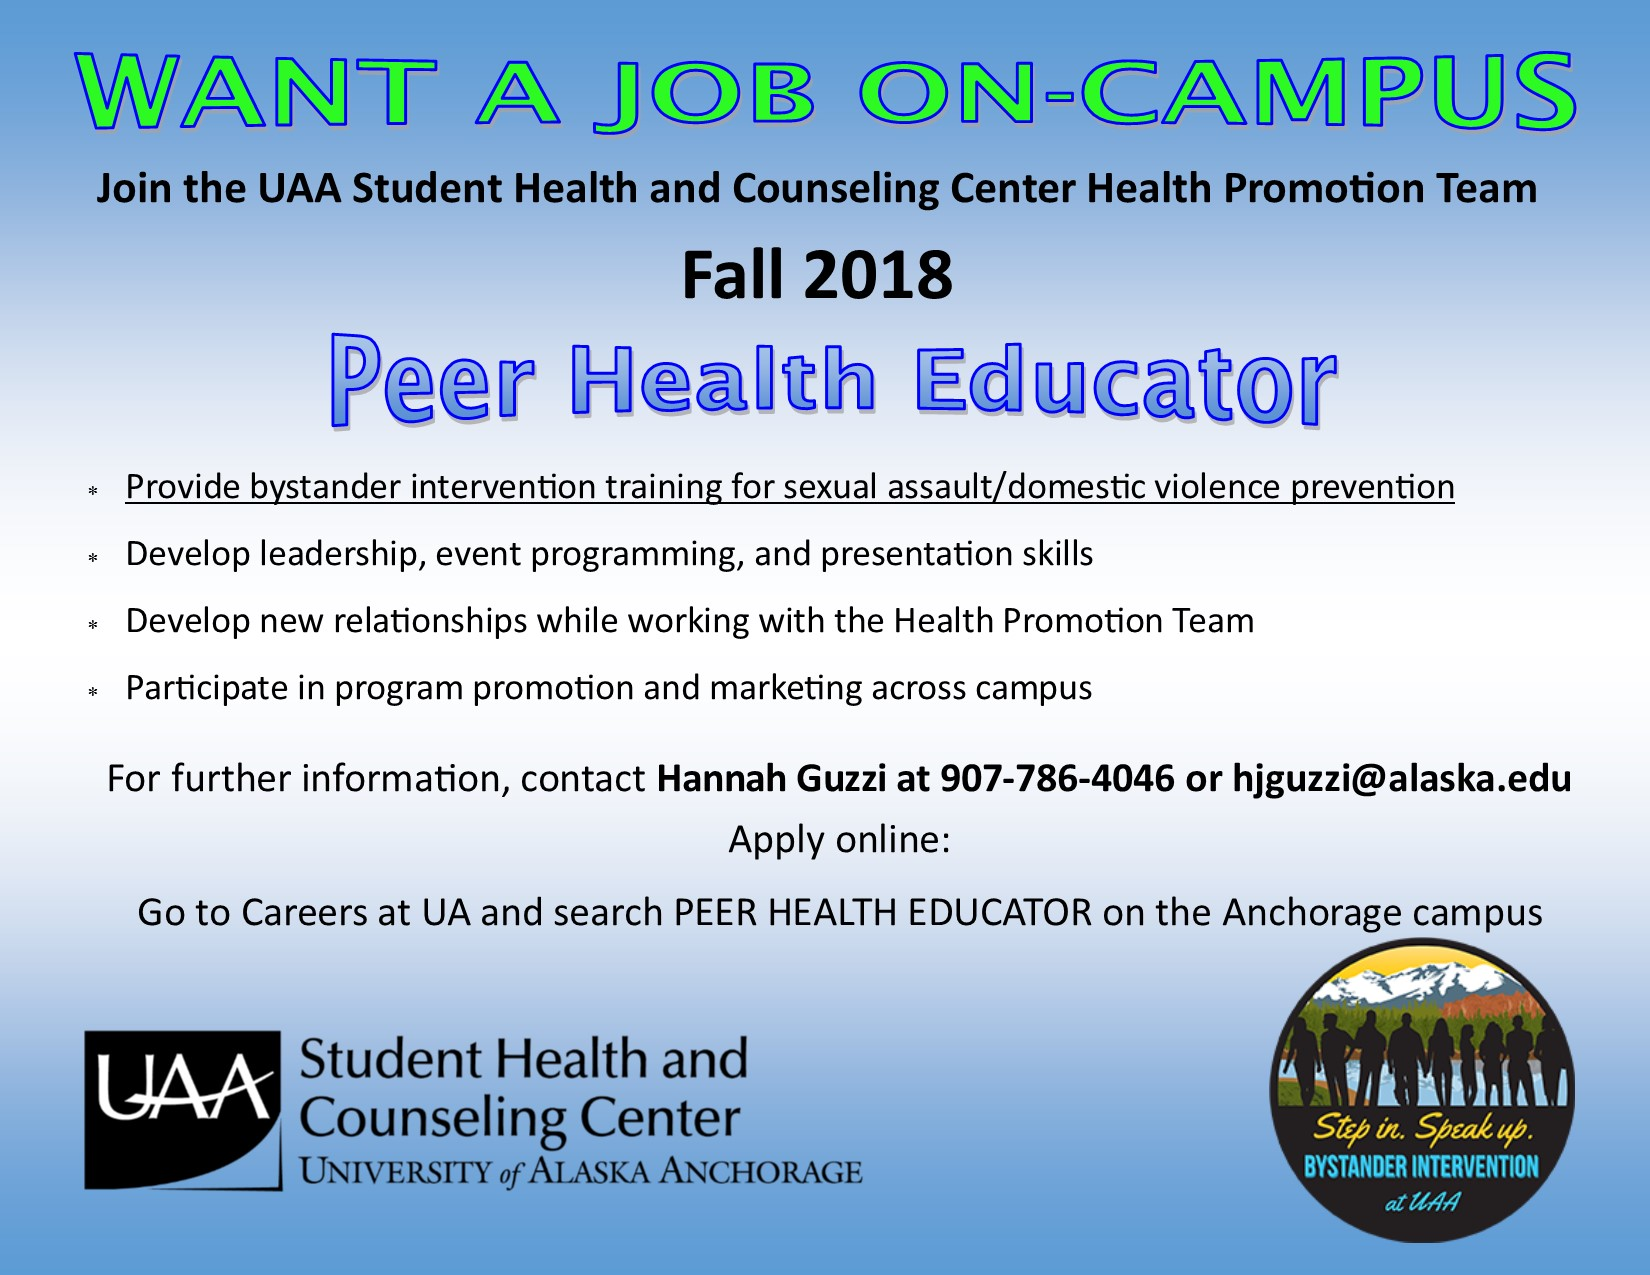 Peer Health Educator Job Posting: Go to Careers at UA and search peer health educator on the Anchorage campus